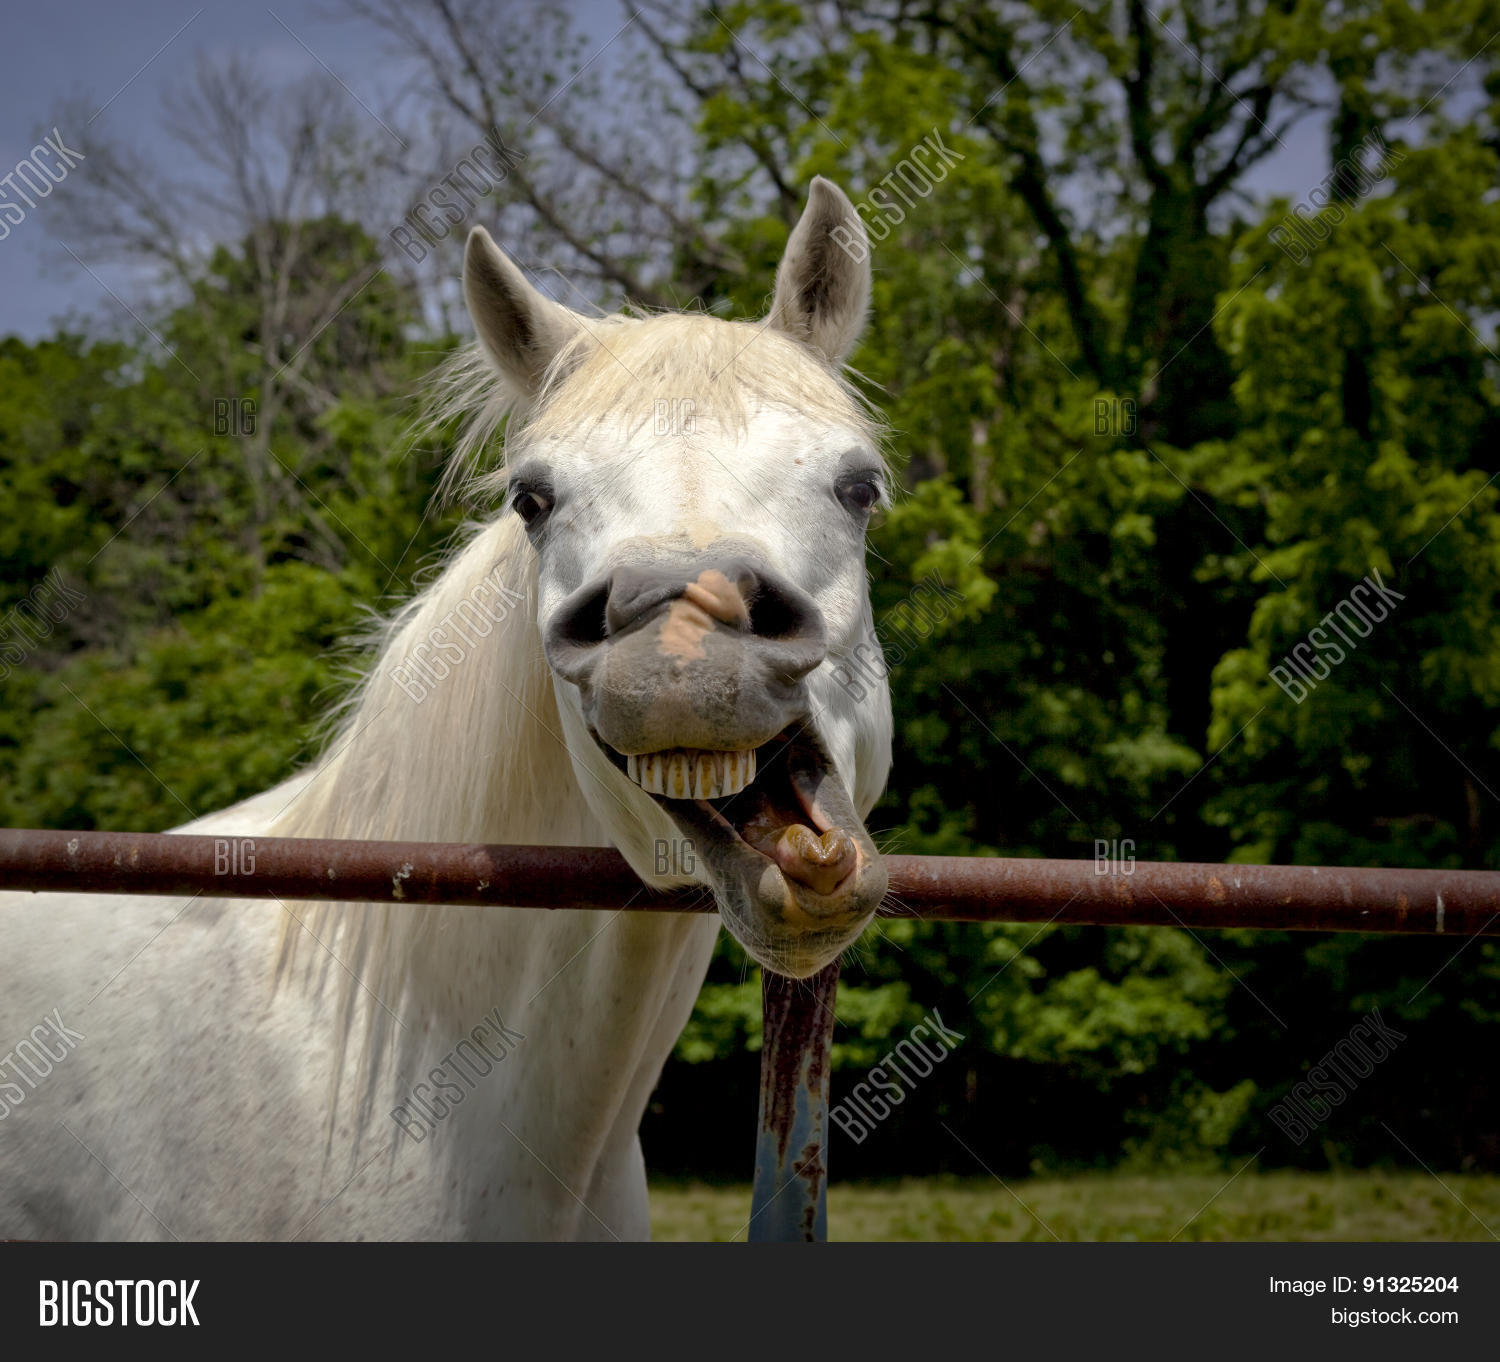 Funny Horse Making Image Photo Free Trial Bigstock